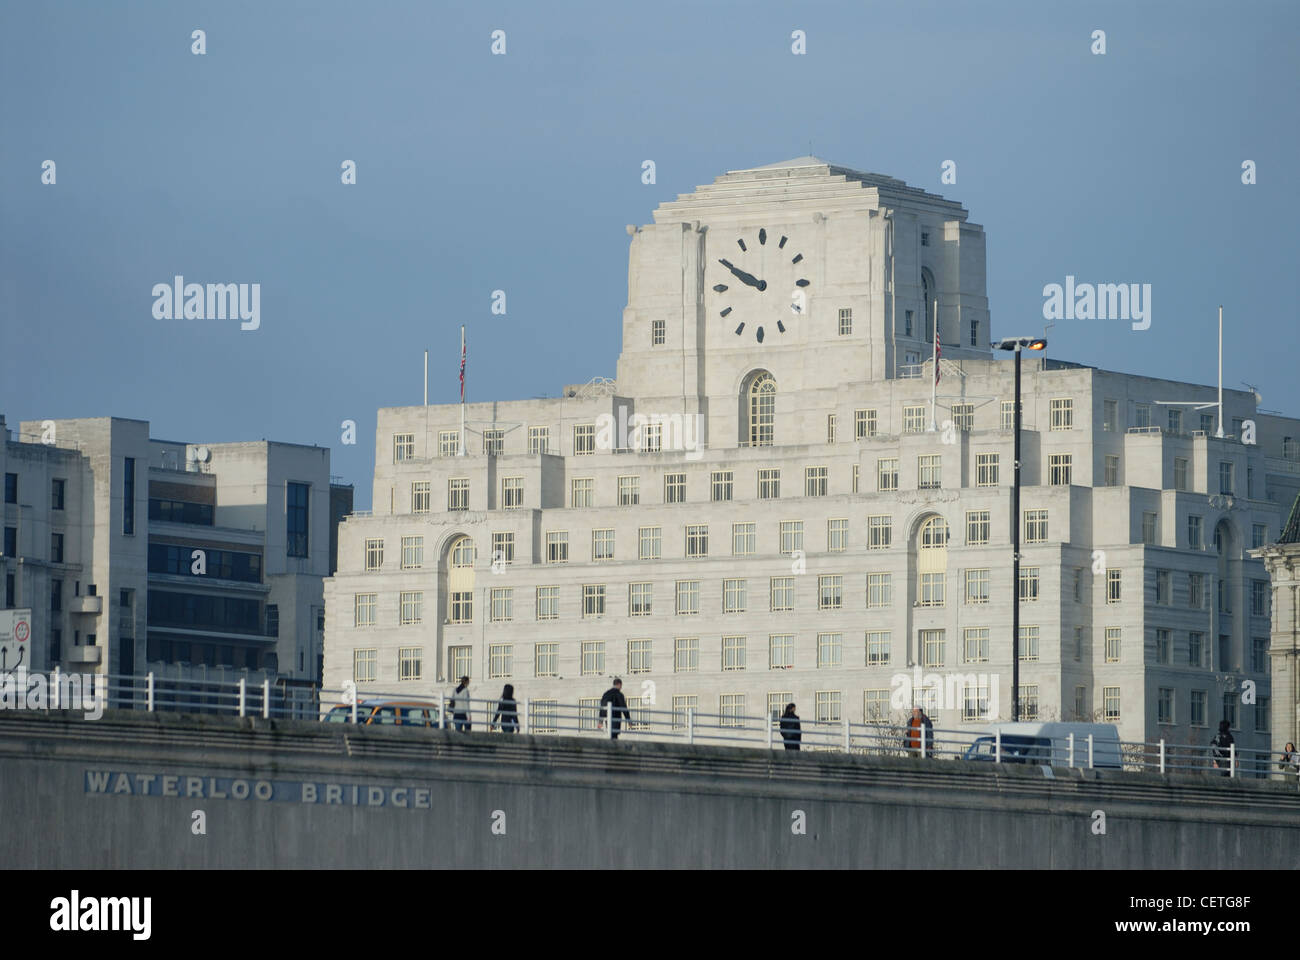 Shell Mex House beyond Waterloo Bridge. It was completed in 1930. Stock Photo